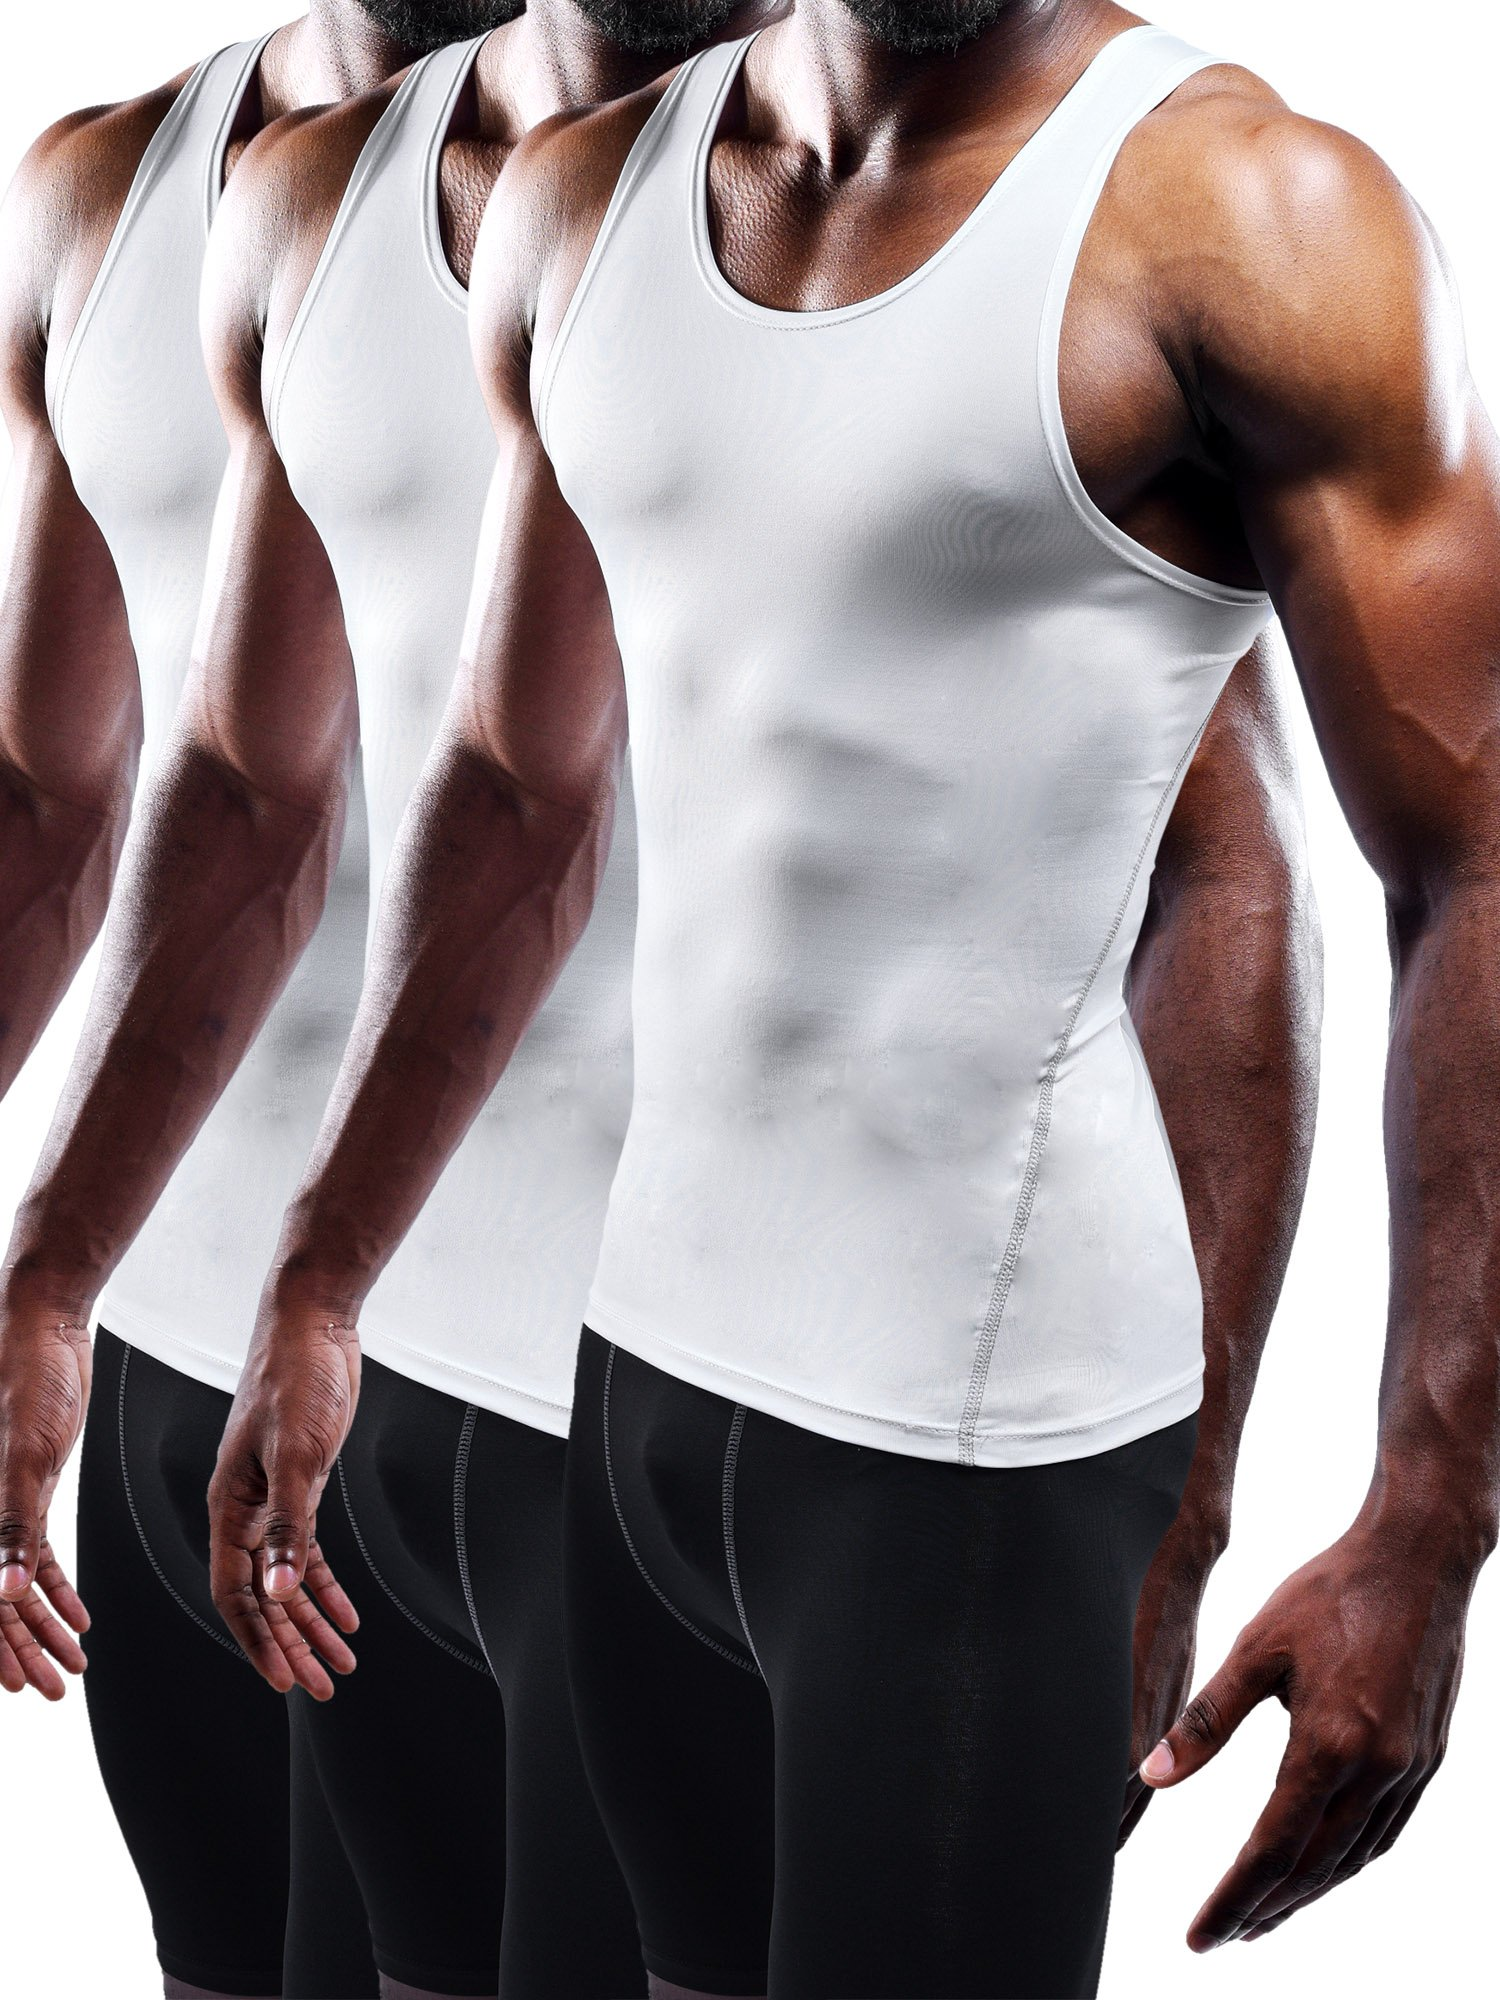 Neleus Men's Athletic 3 Pack Compression Tank Top Dry Fit Undershirts,White,XS,EUR S by Neleus